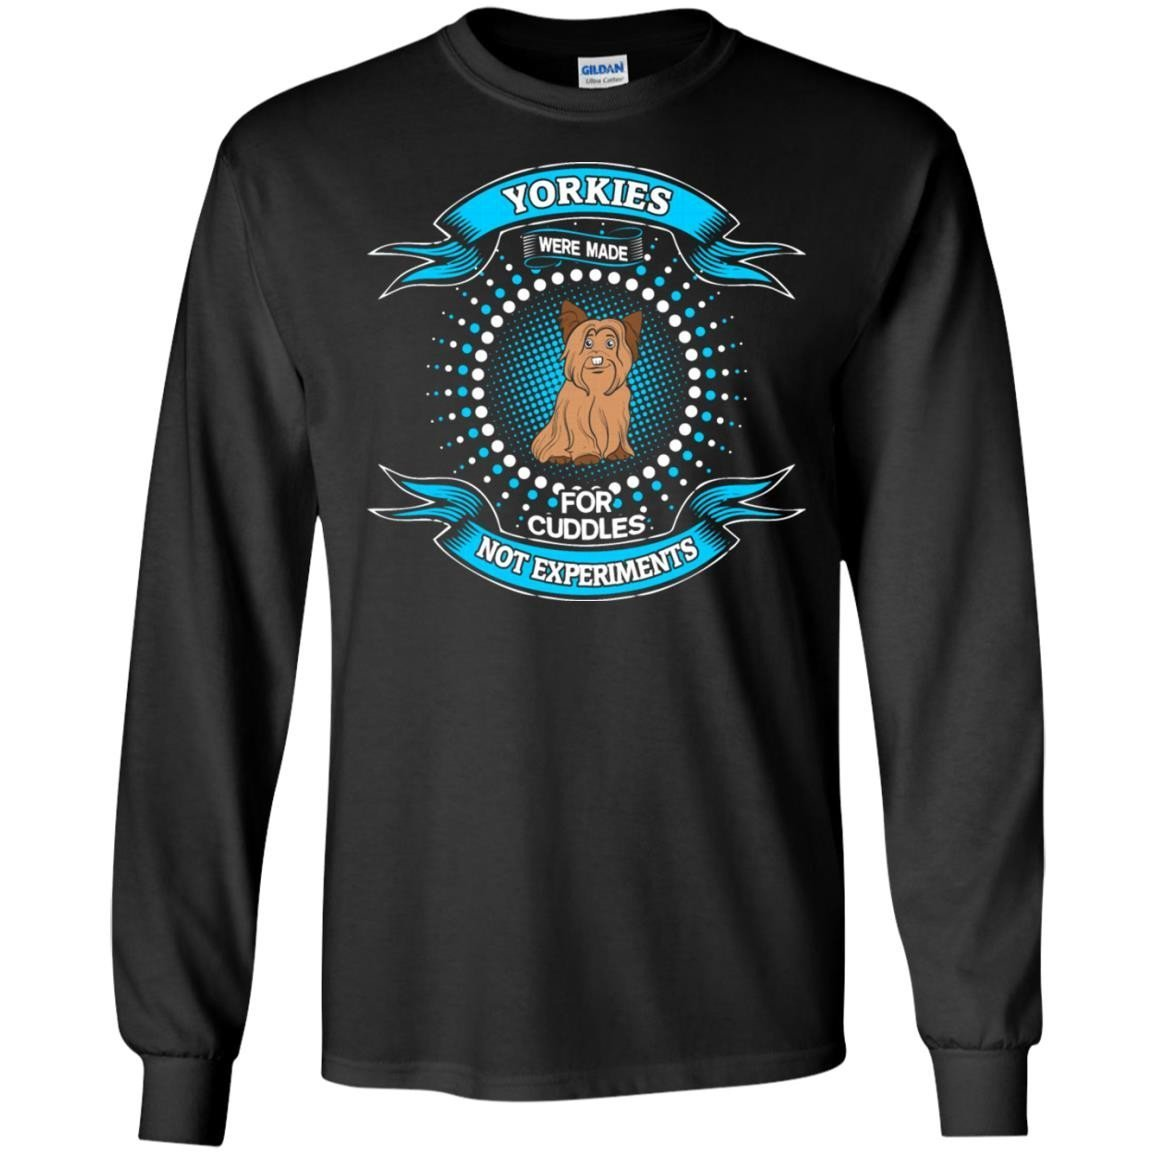 Yorkie Dogs For Cuddles Not Experiments T-Shirt Long Sleeve 240